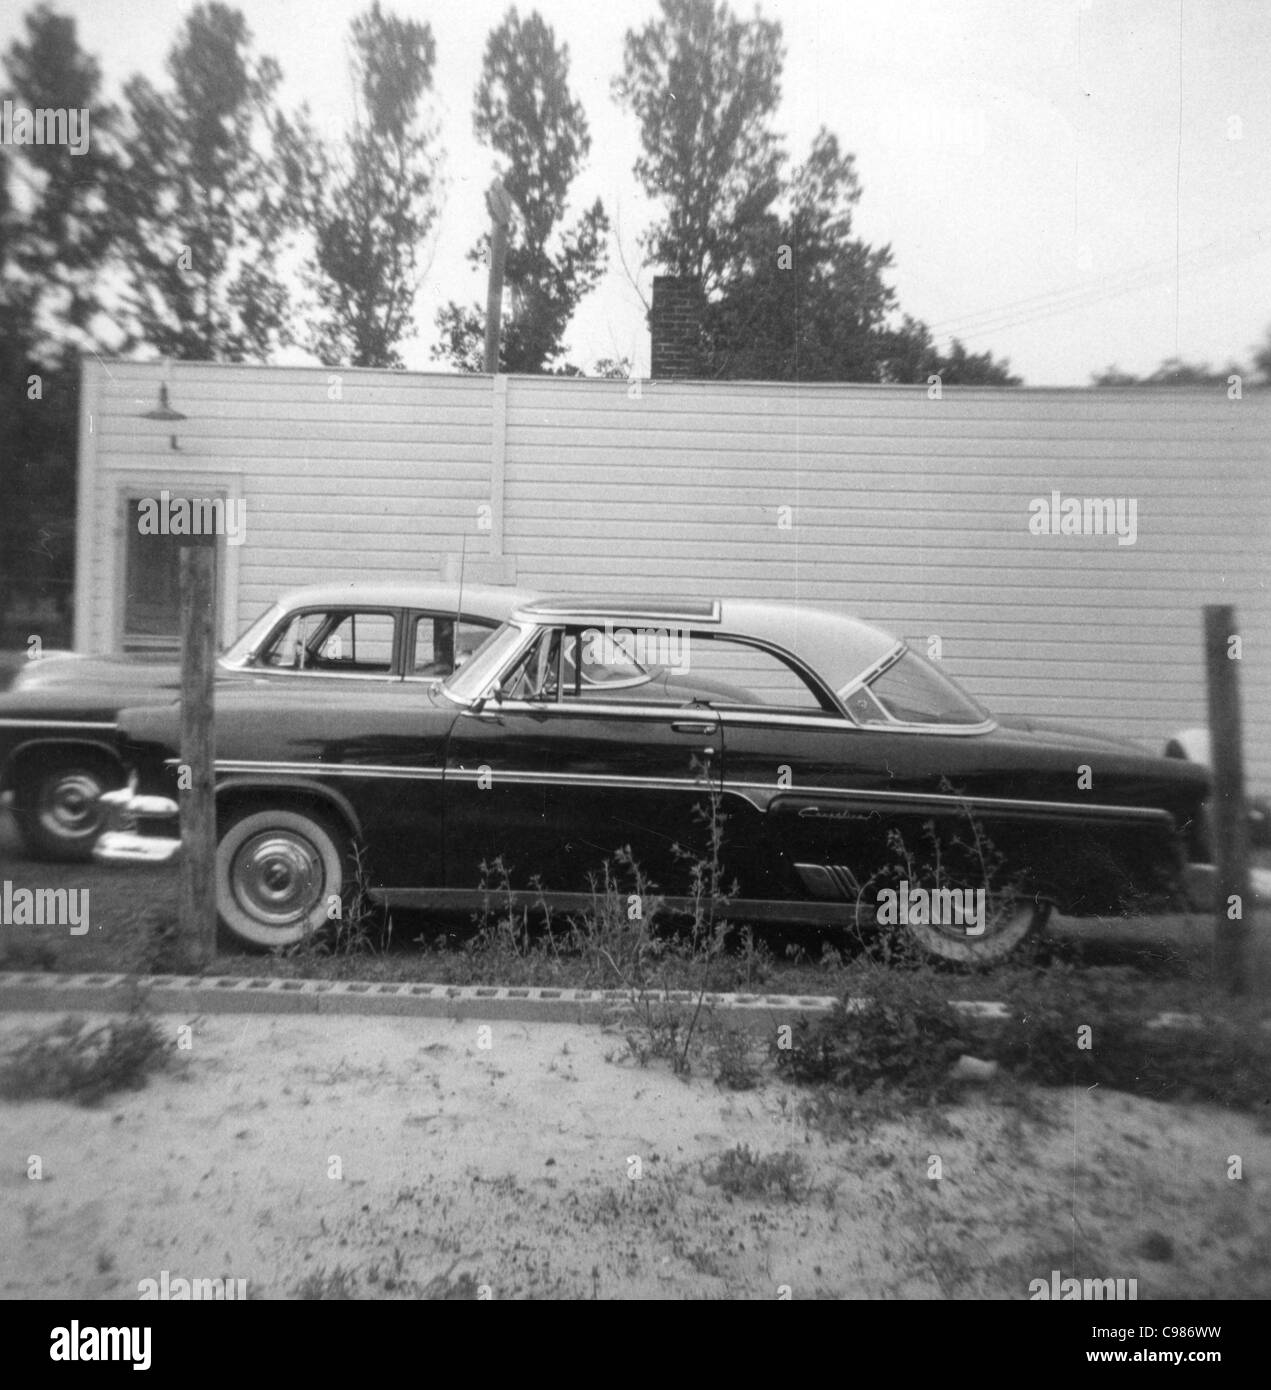 Indiana car culture 1960s black and white parked 1950s cars car lot - Stock Image